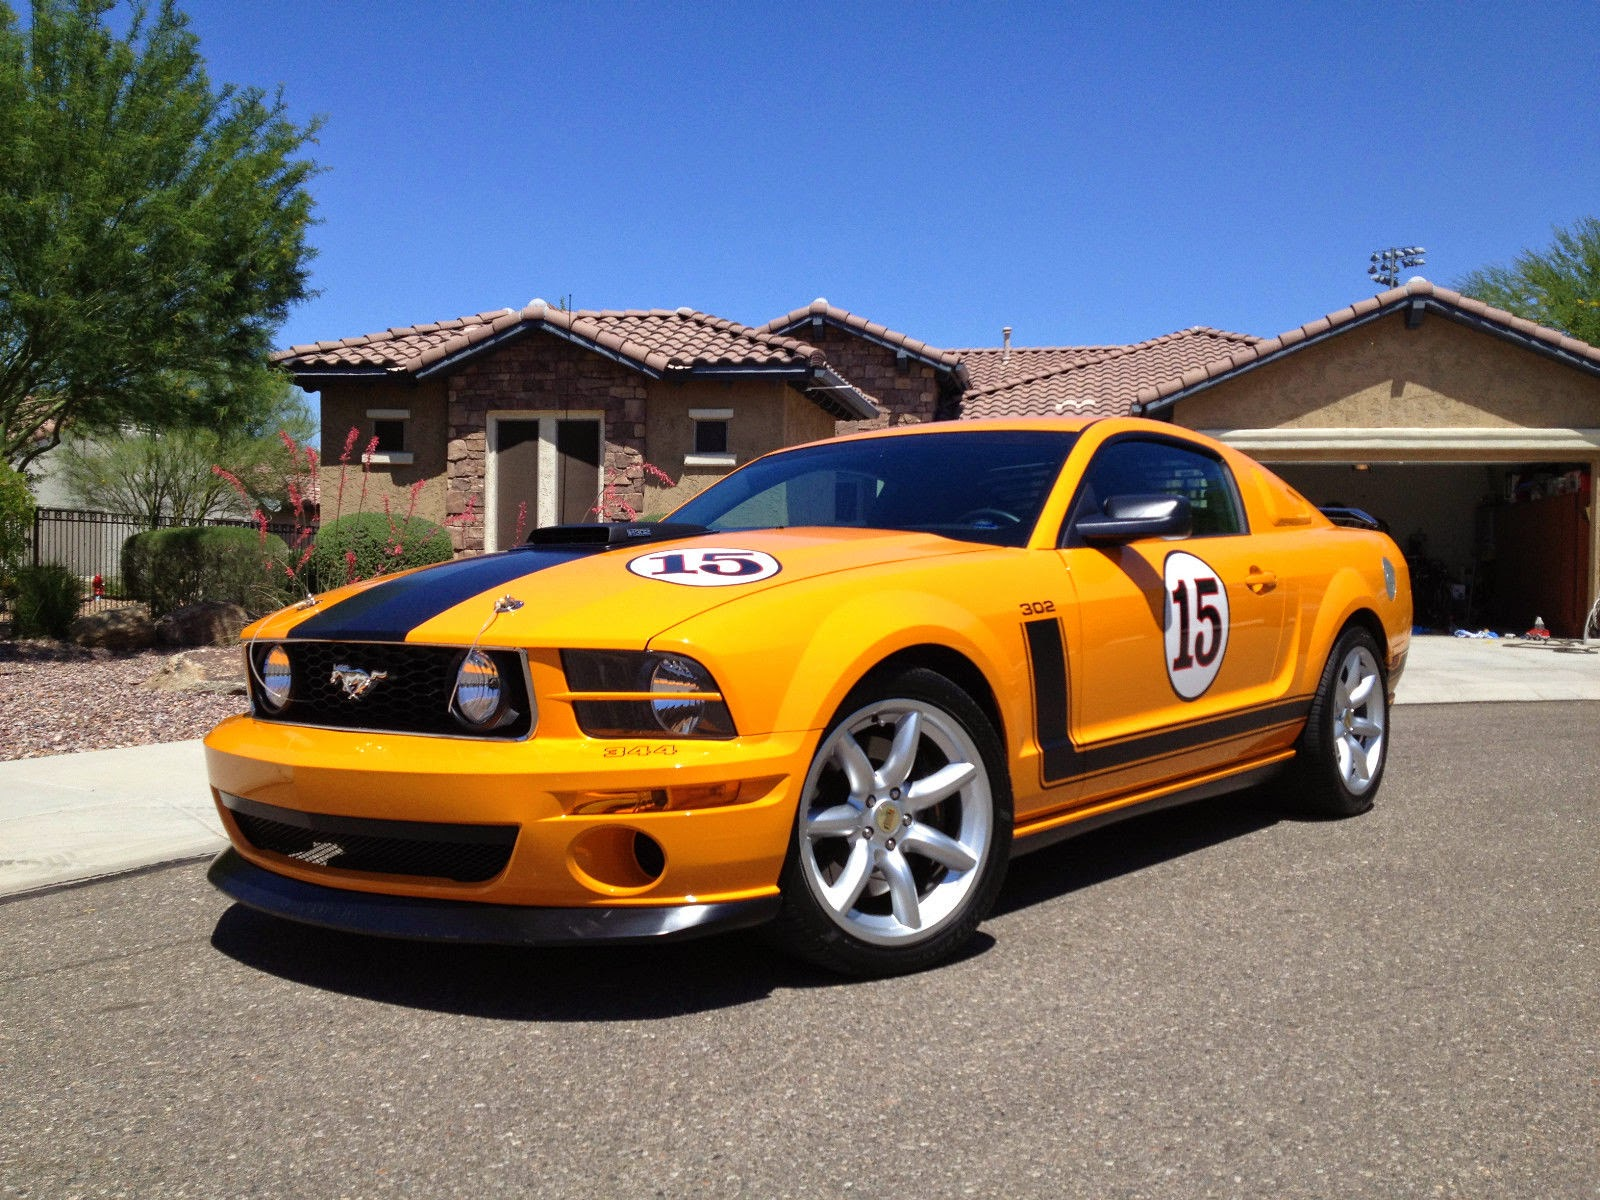 2007 saleen limited edition mustang boss 302 for sale american muscle cars. Black Bedroom Furniture Sets. Home Design Ideas